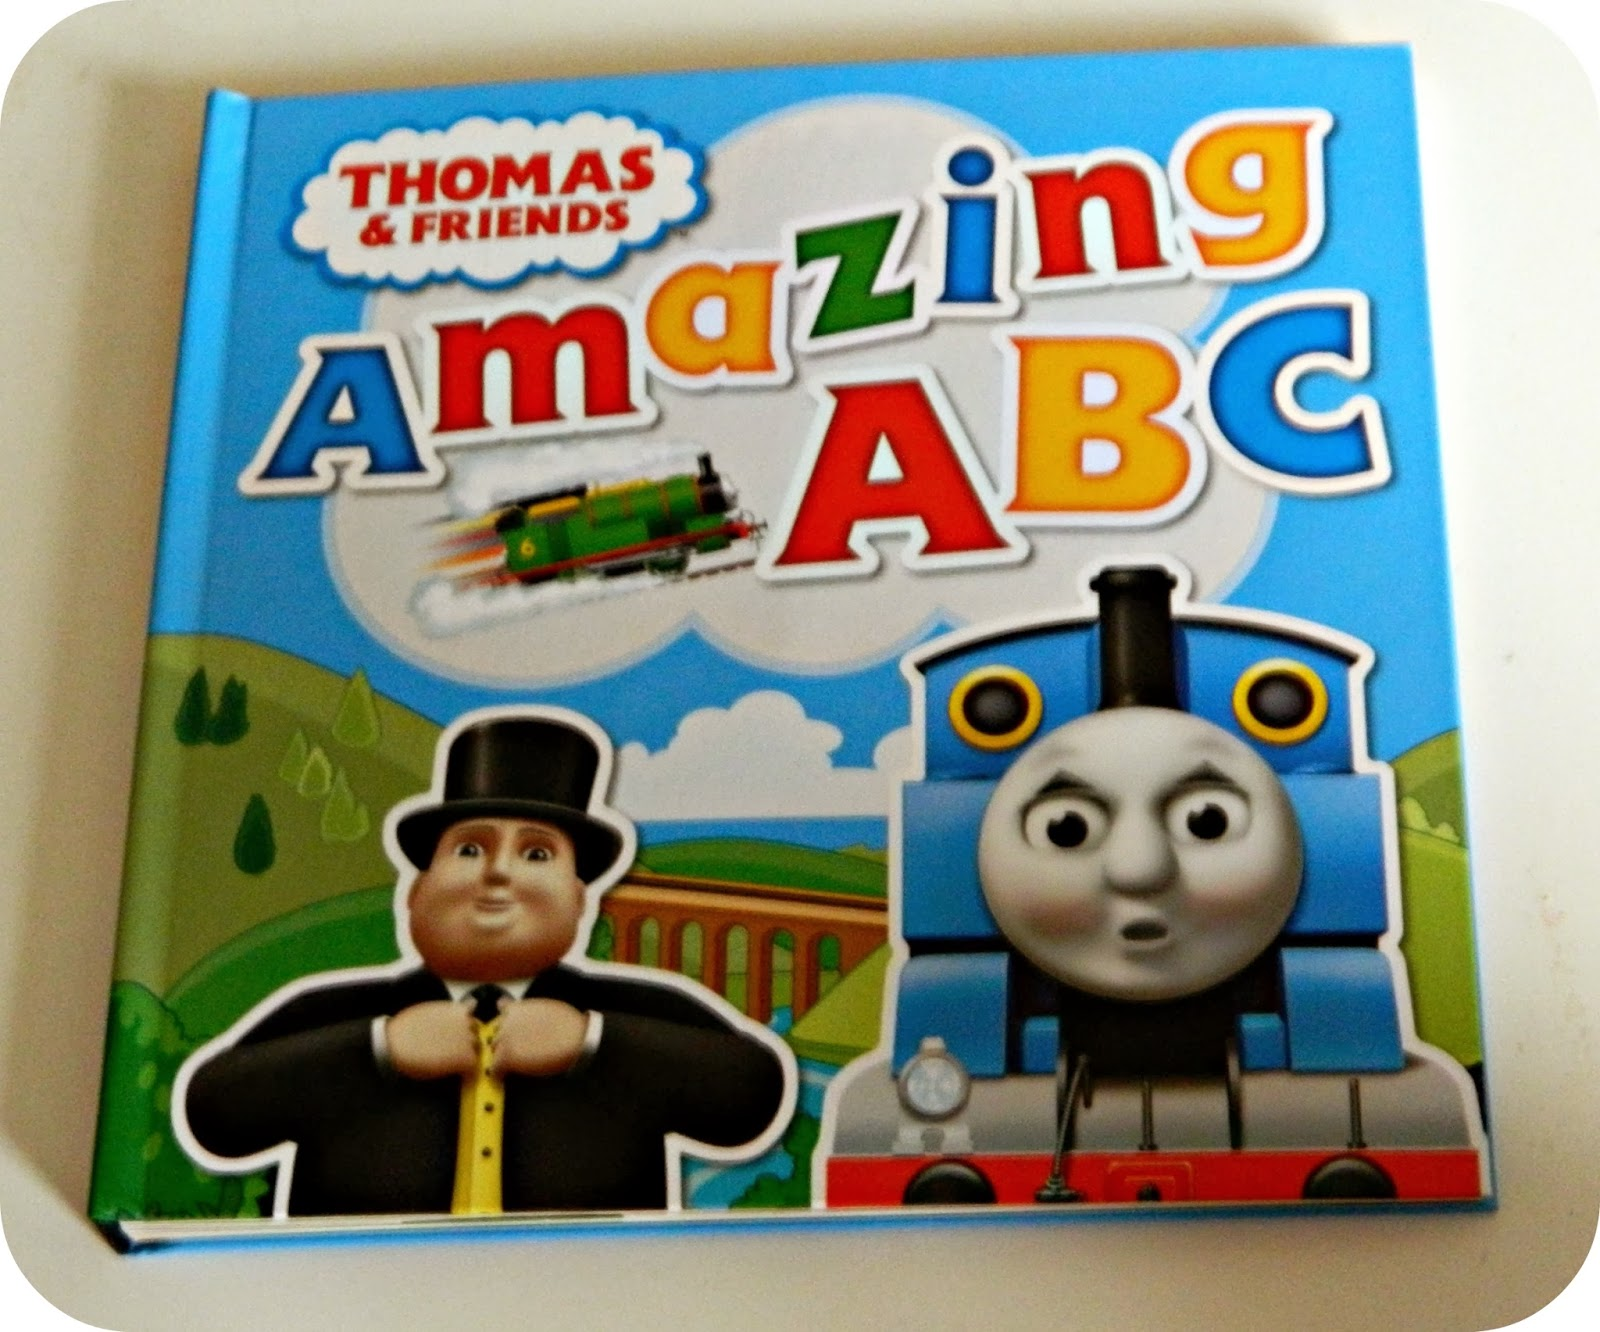 Thomas & Friends Amazing ABC Egmont Publishing